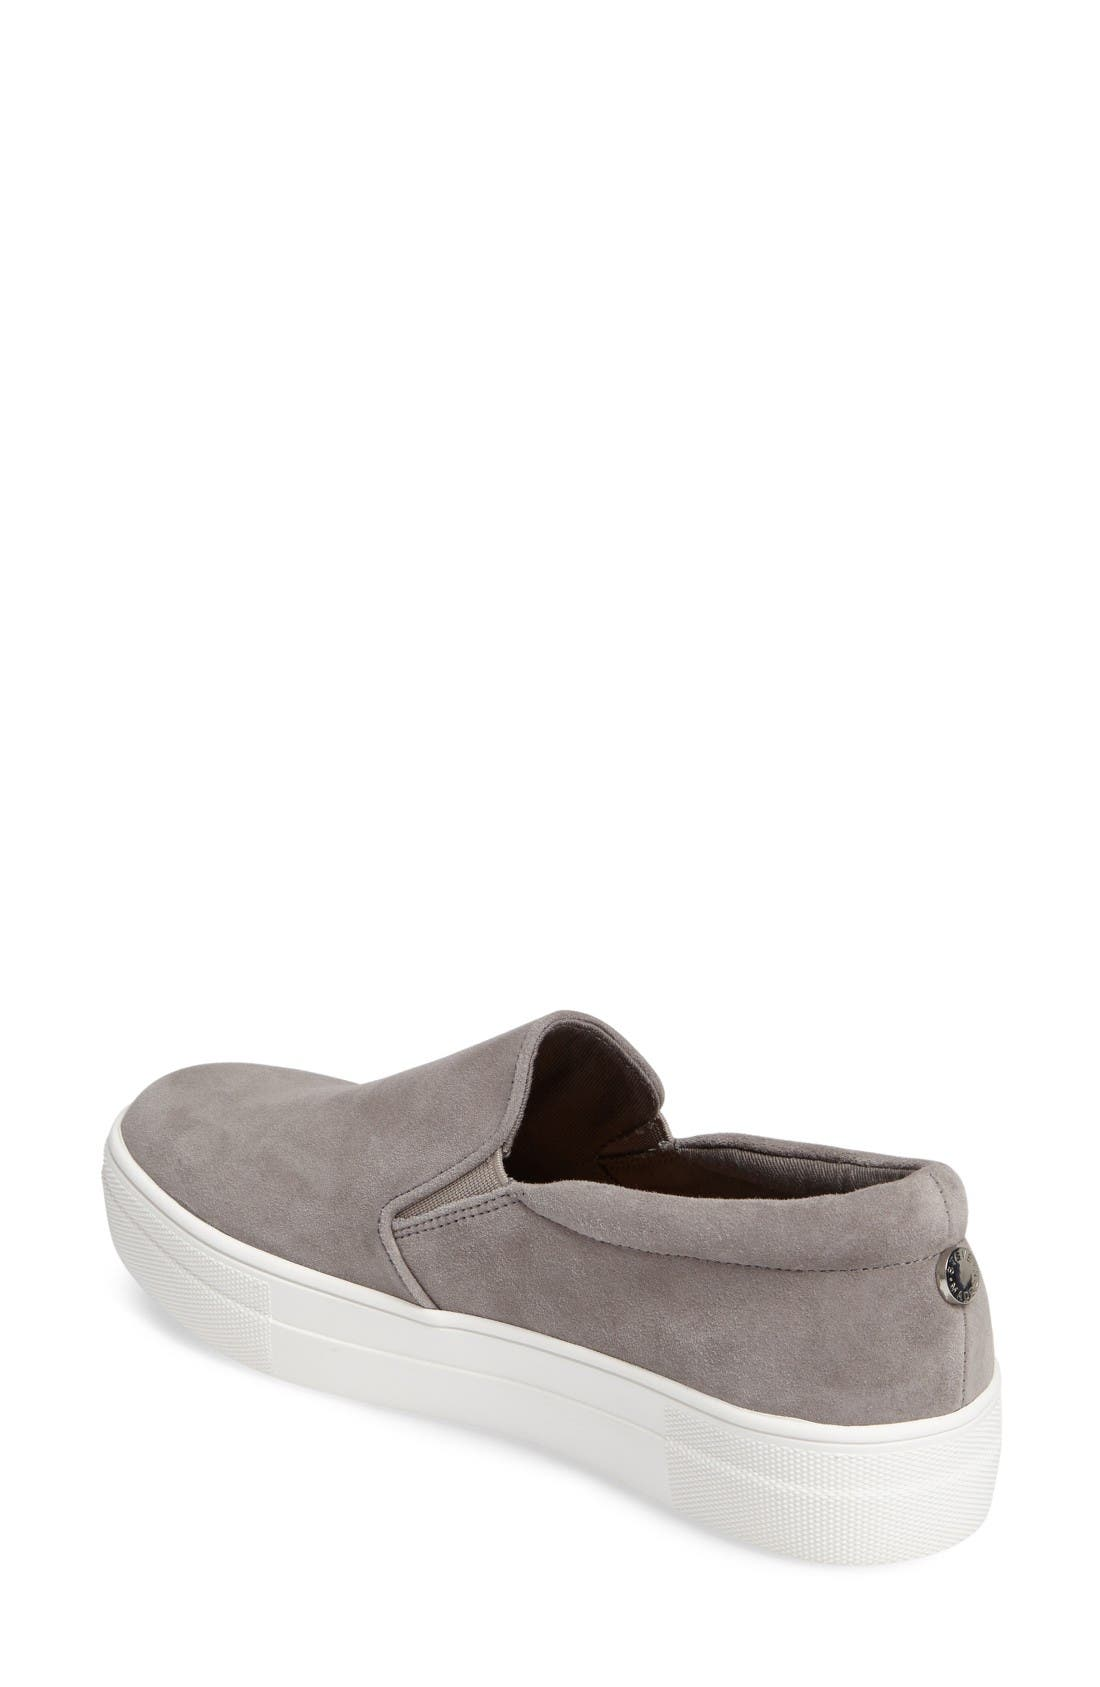 Alternate Image 2  - Steve Madden Gills Platform Slip-On Sneaker (Women)